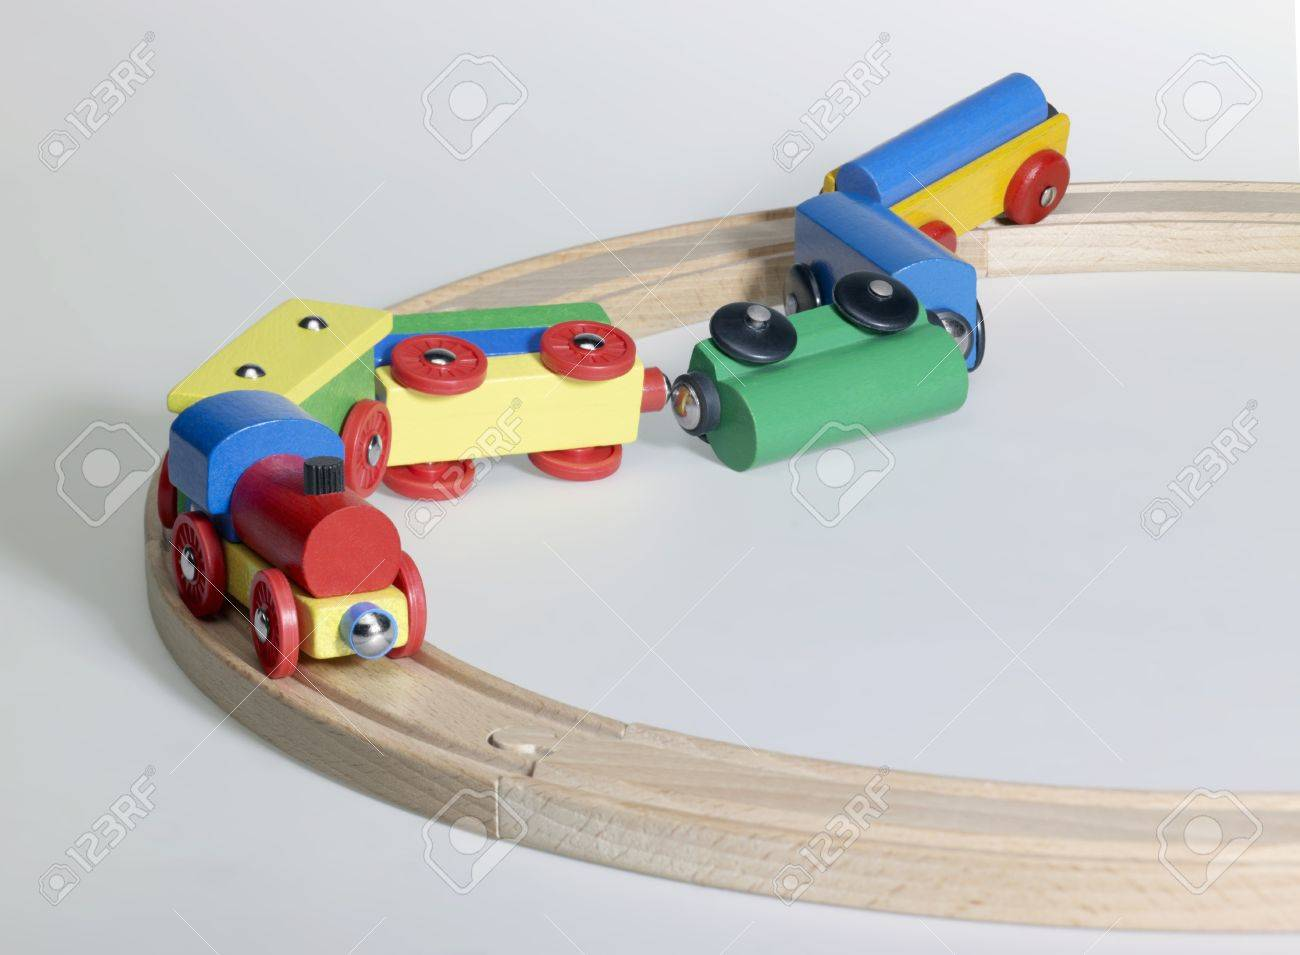 studio photography of a colorful wooden toy train on wooden tracks..